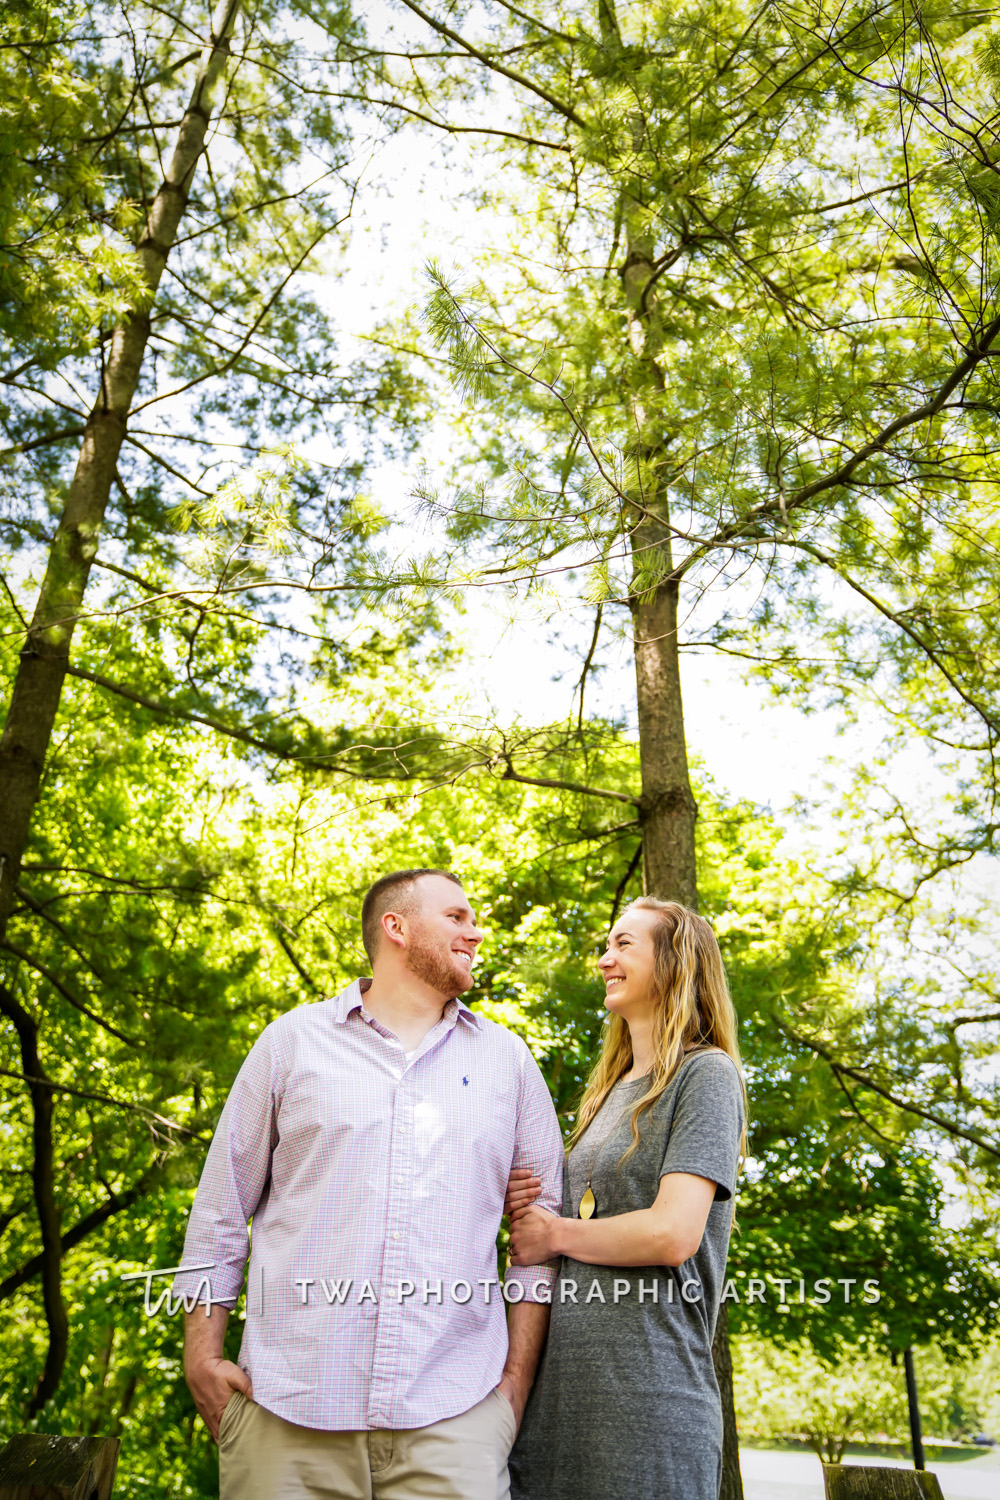 Chicago Wedding Photographers | Kate & Tucker's Naperville Riverwalk Engagement Photo Session | TWA Photographic Artists